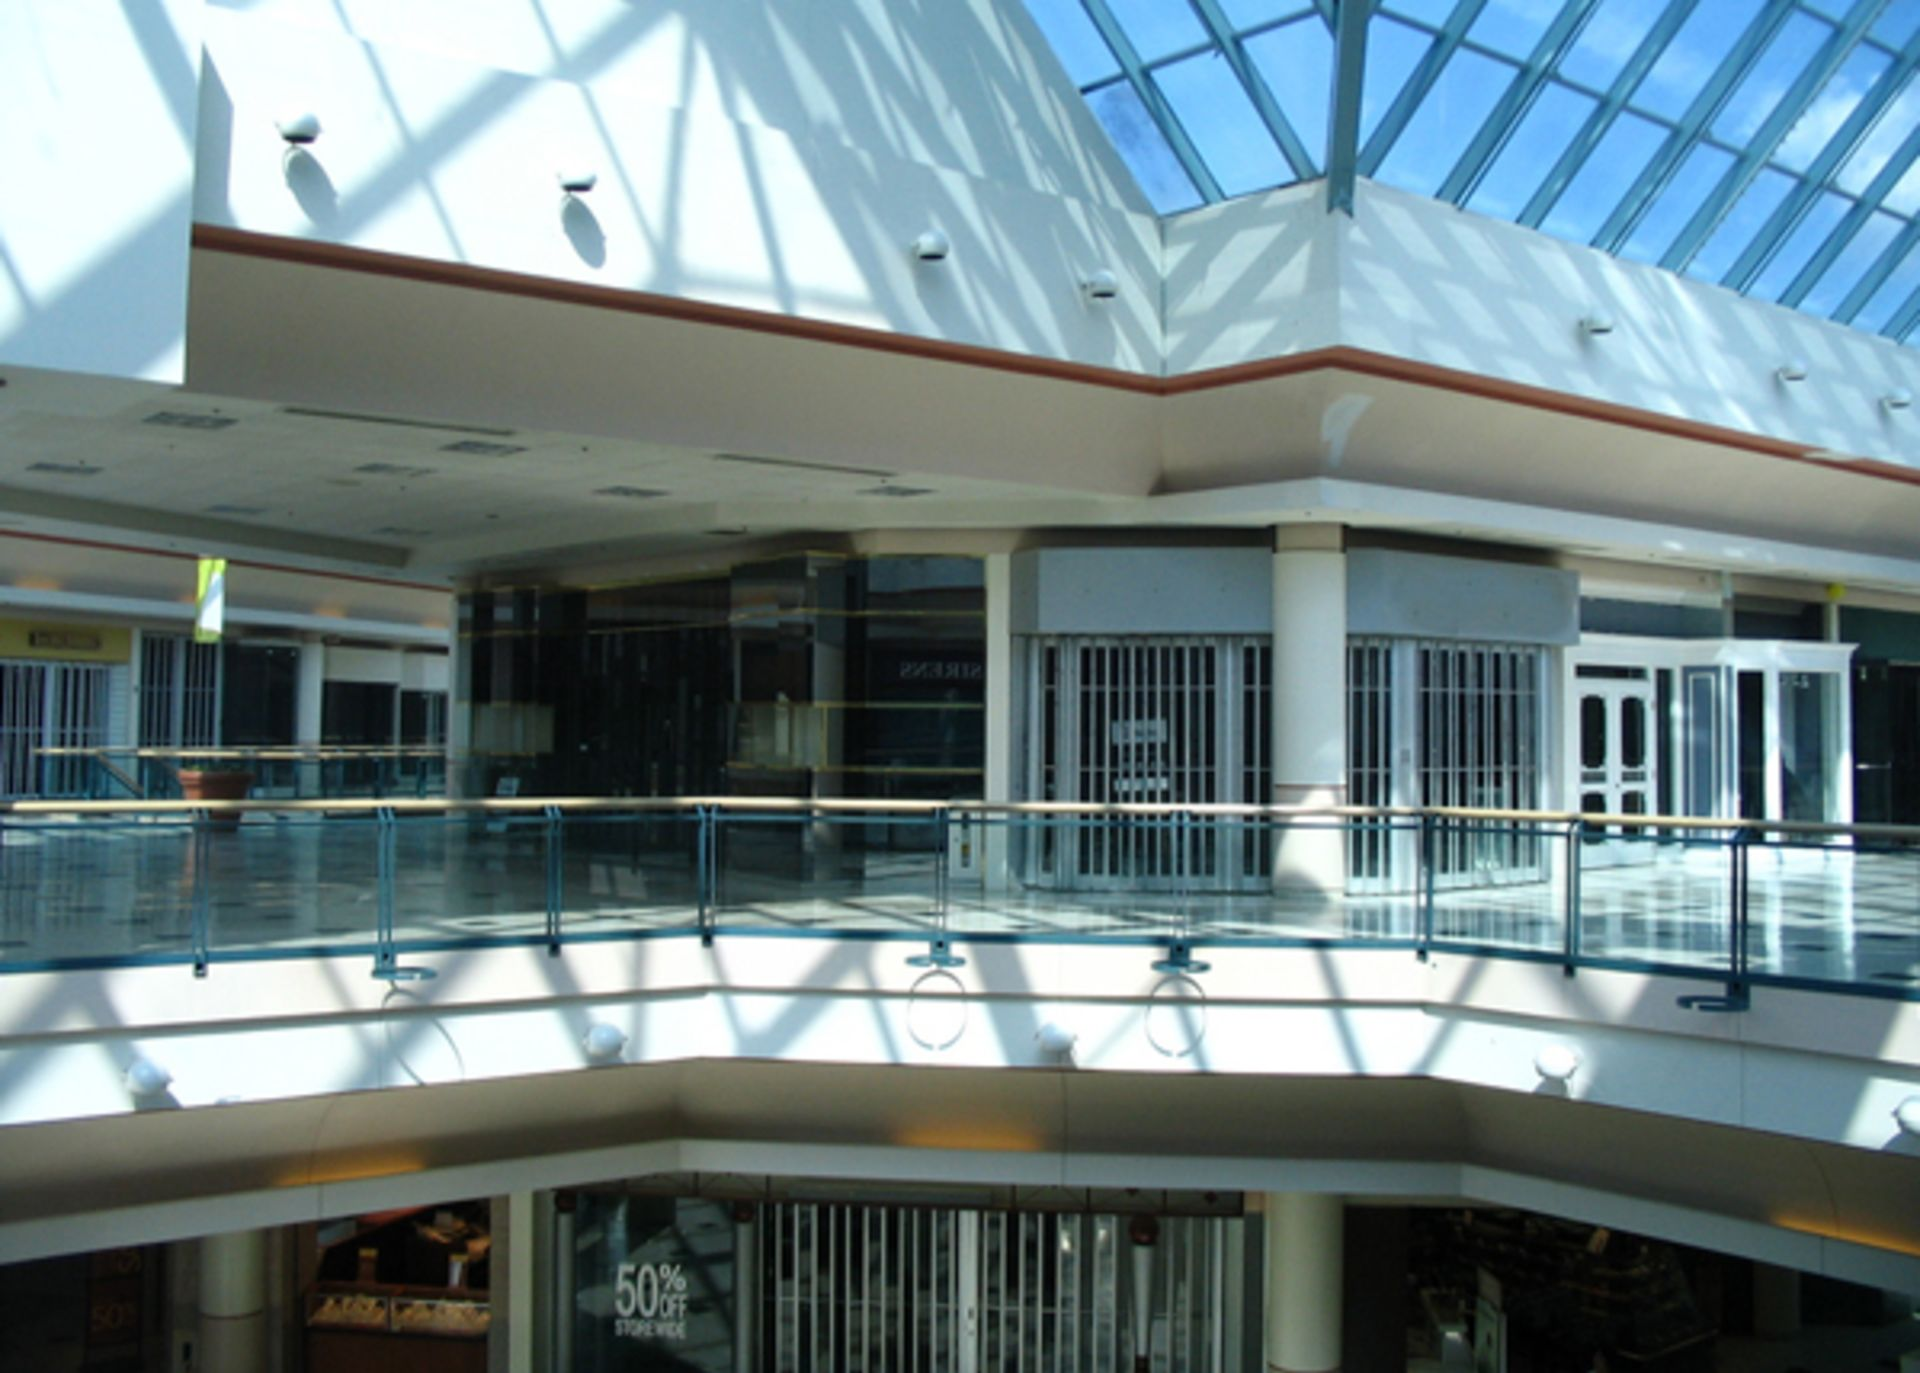 How will retail bankruptcies impact CMBS and REITs?